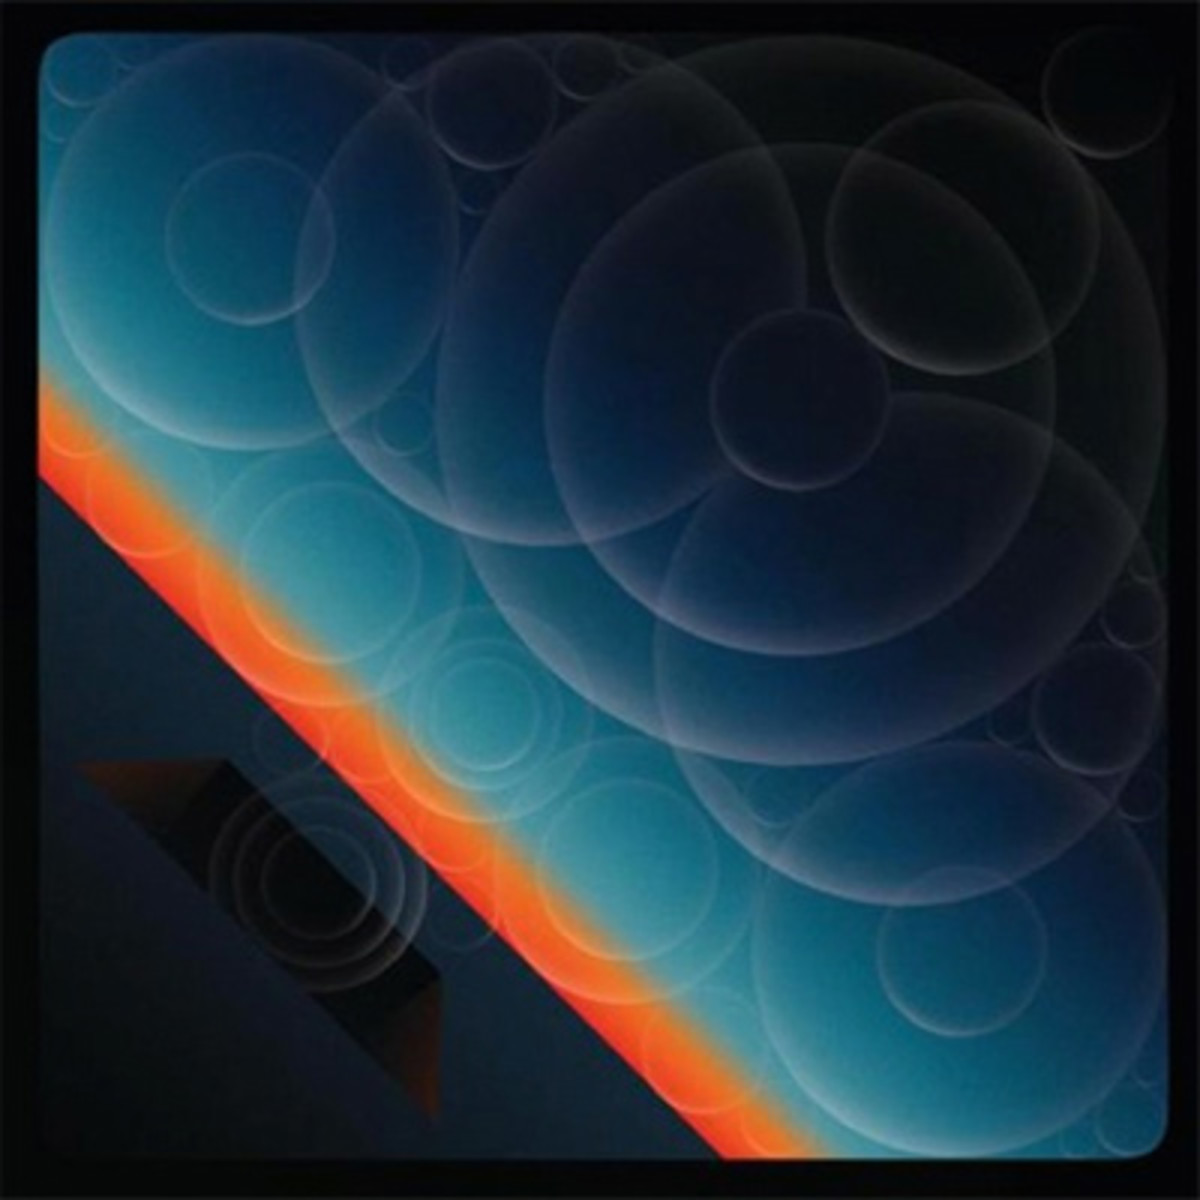 Released on March 26, 2012, Noctourniquet is The Mars Volta's the sixth and final studio album.